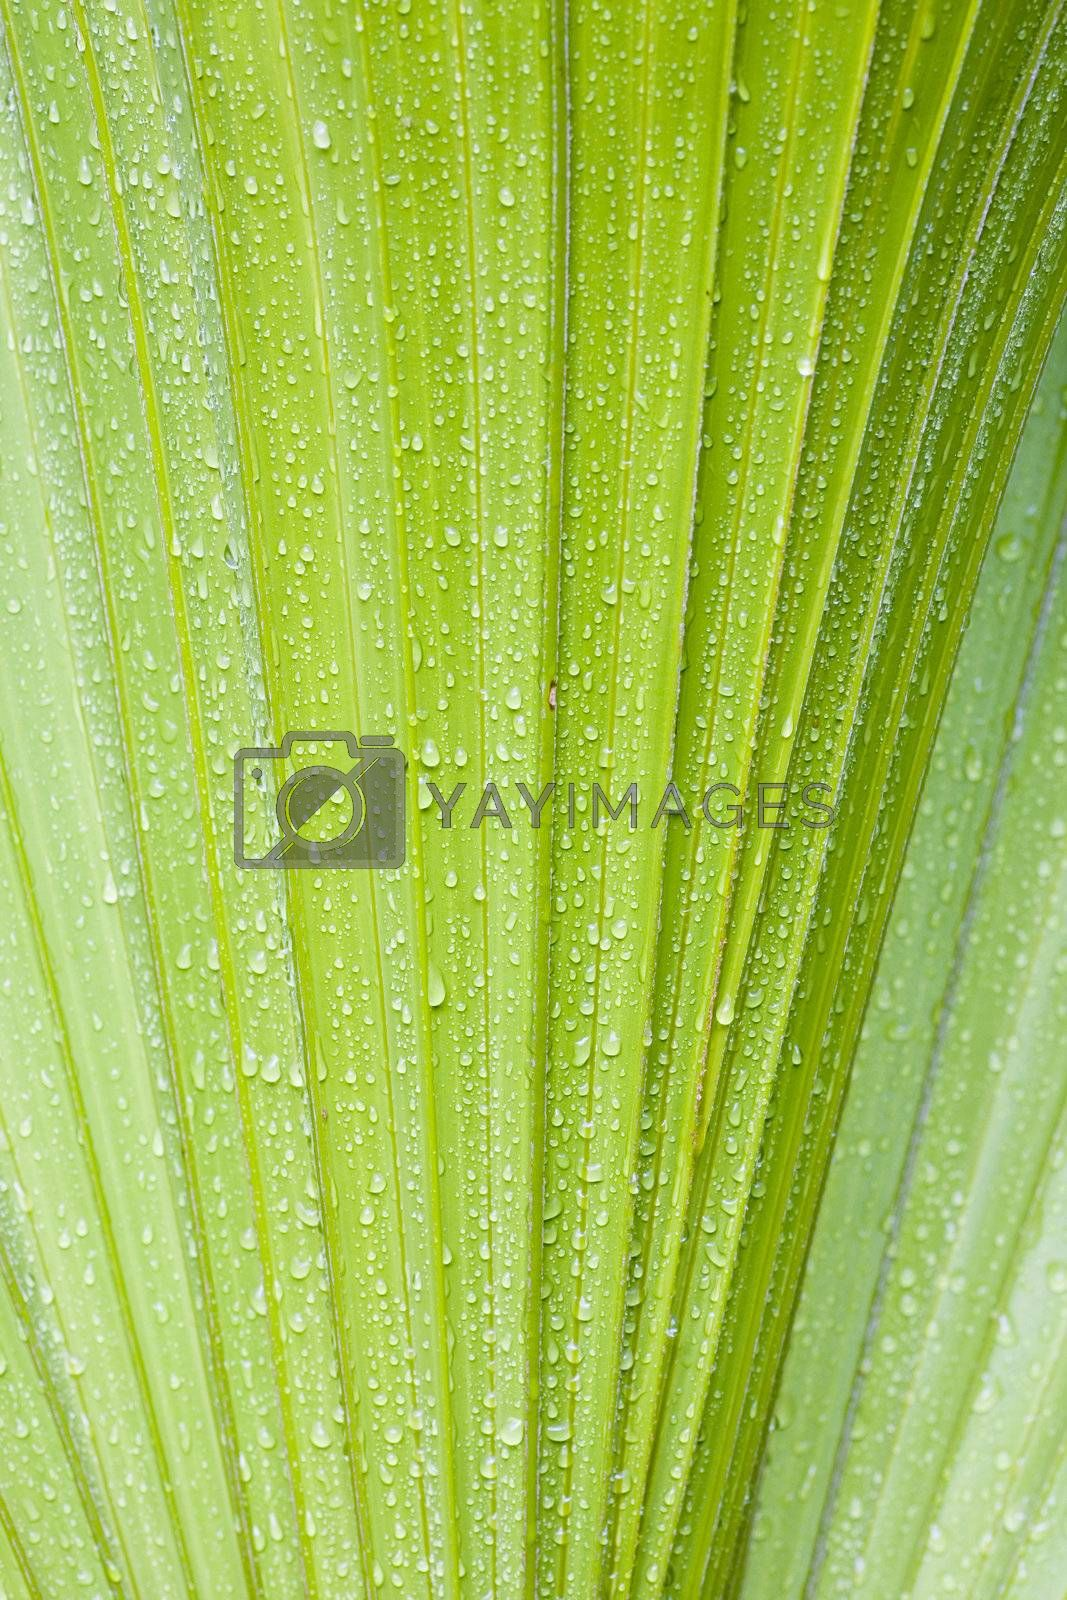 Water drops on a leaf of a palmtree